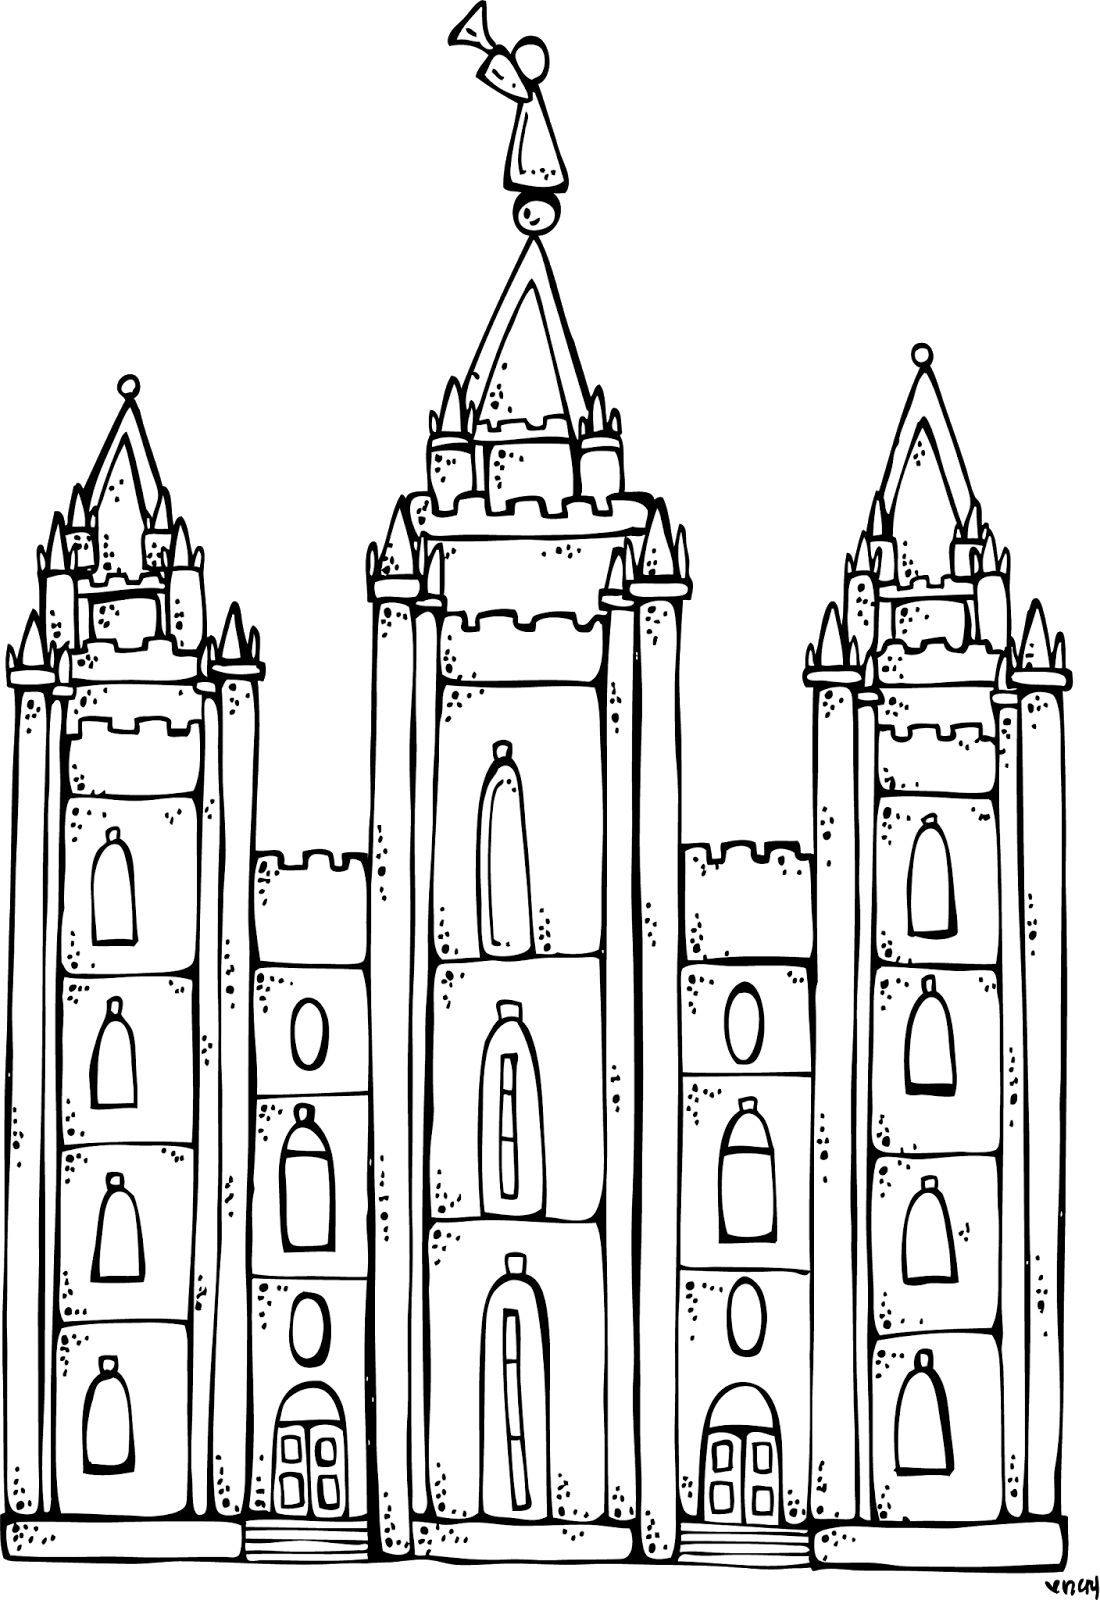 Melonheadz LDS illustrating: I Love to see the temple.